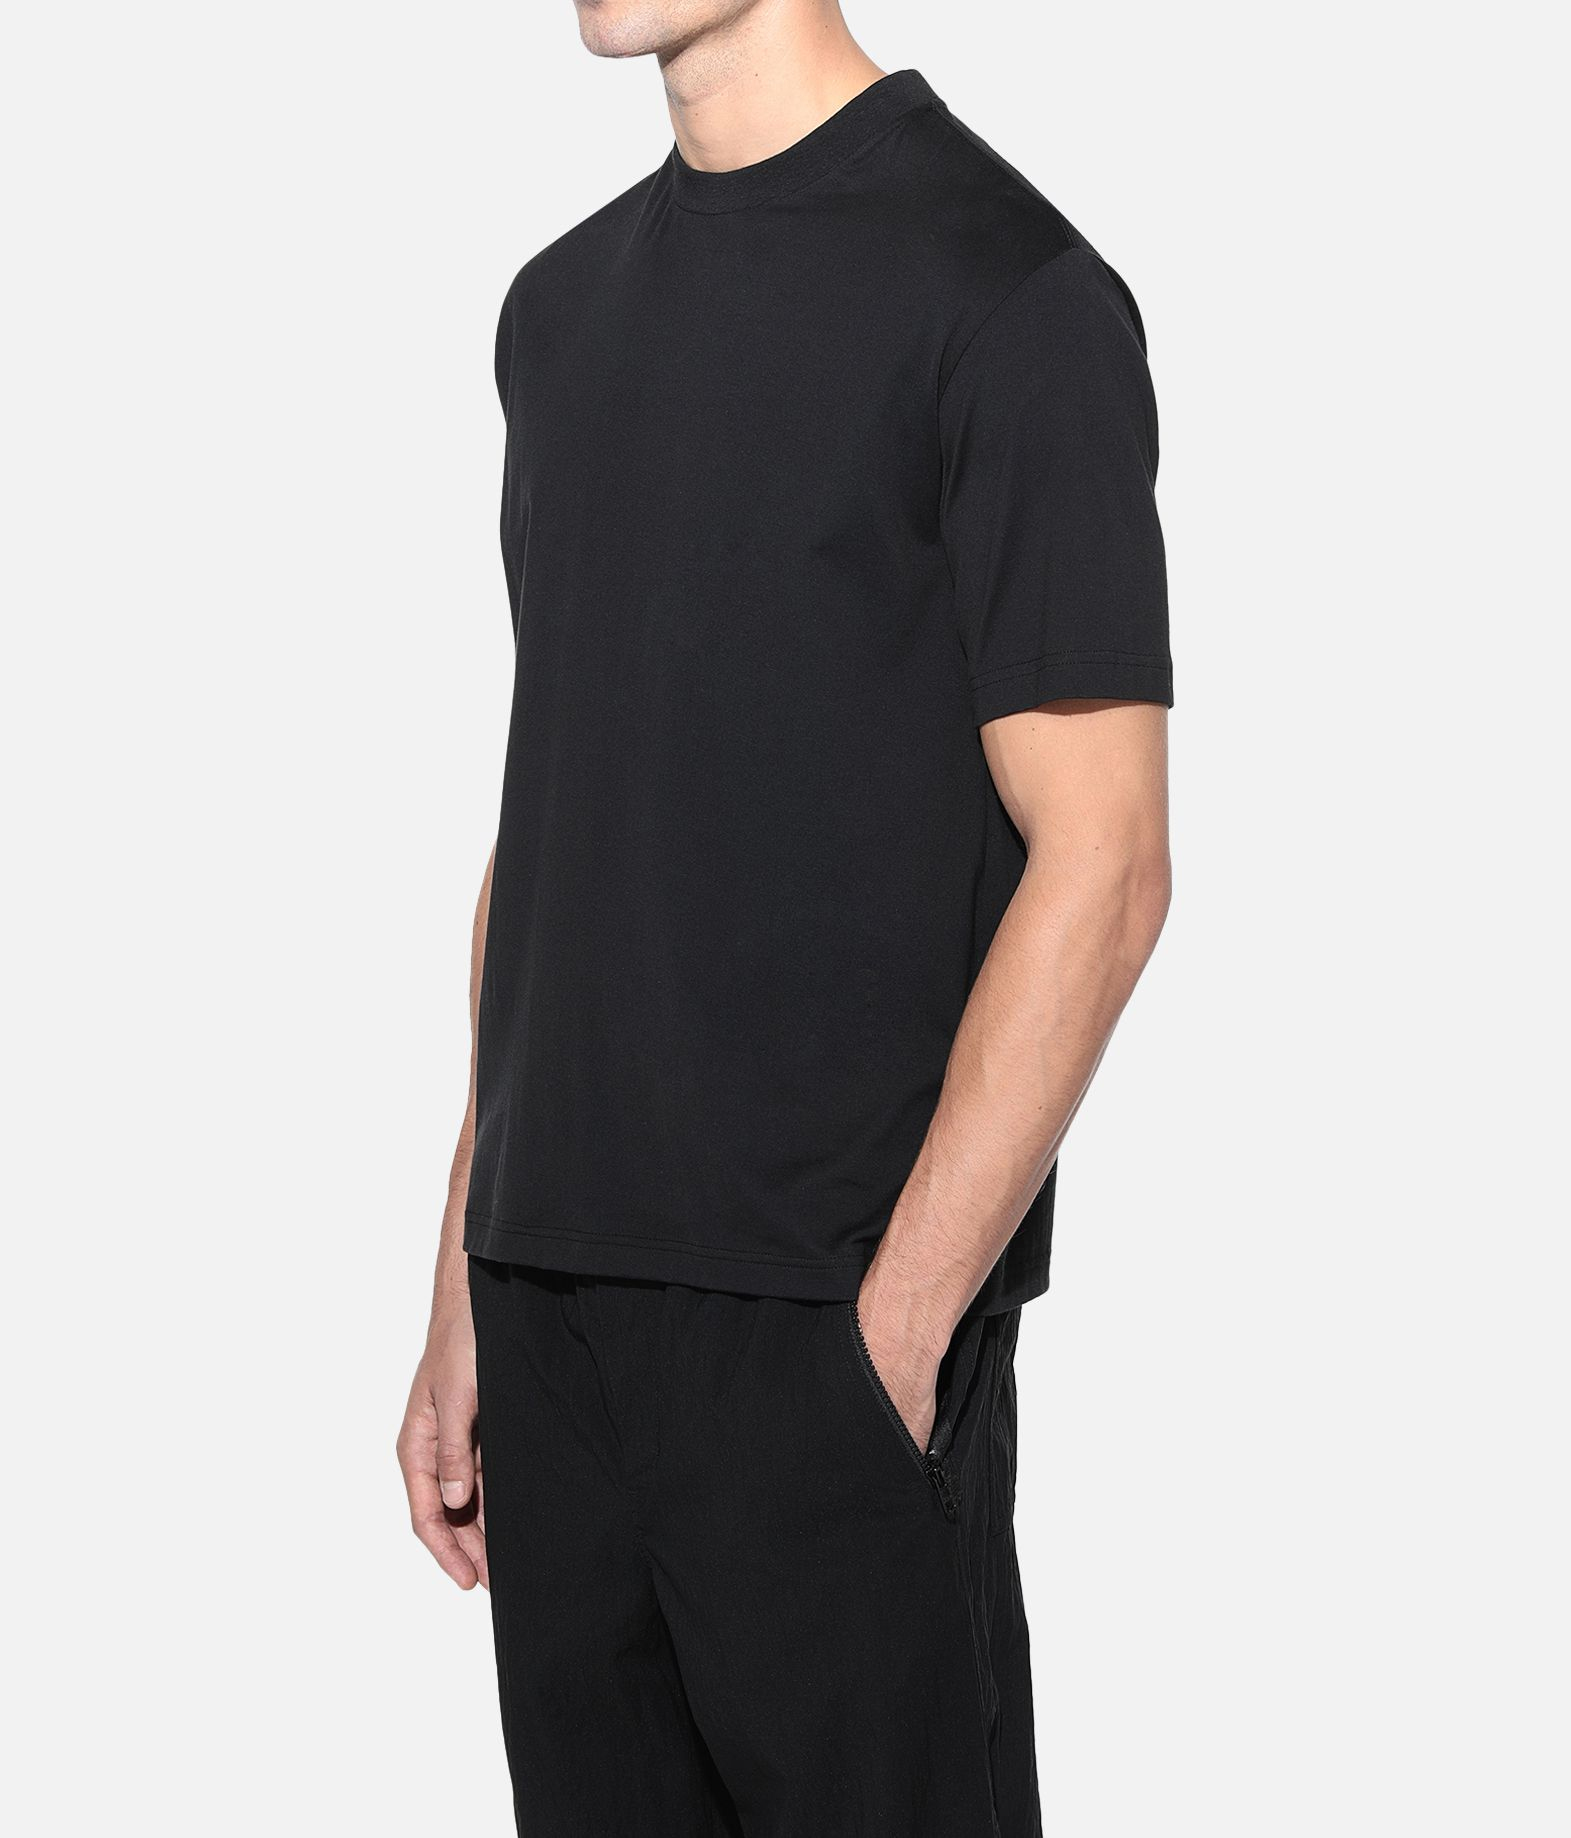 Y-3 Y-3 Signature Graphic Tee Kurzärmliges T-shirt Herren e